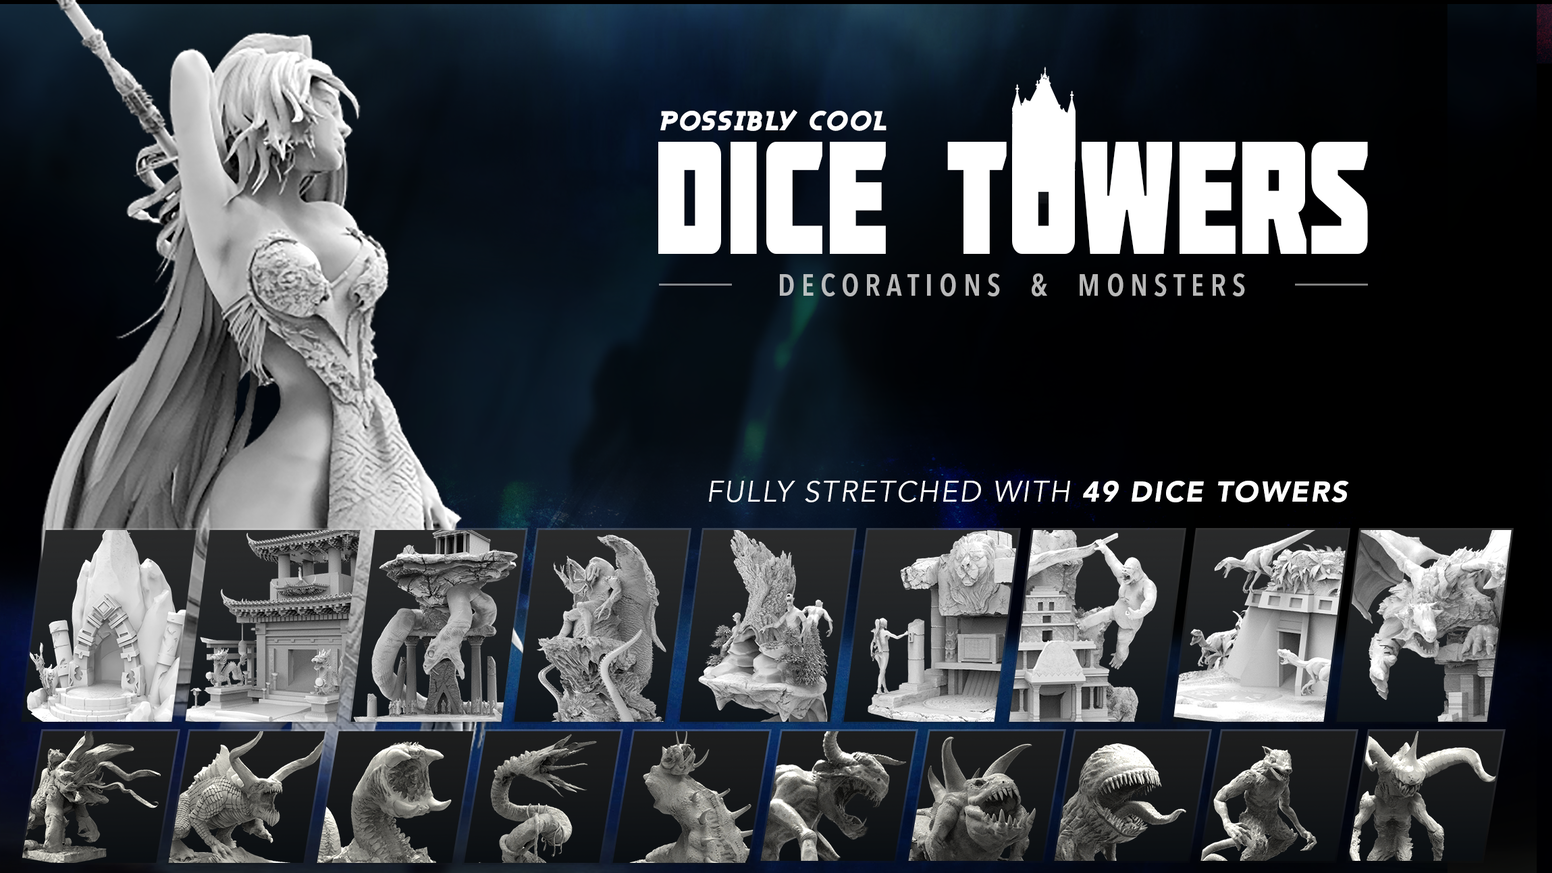 Dice Towers! Incredibly detailed Dice Towers and more than 400 decoration items and monster miniatures in 3D printable .STL.